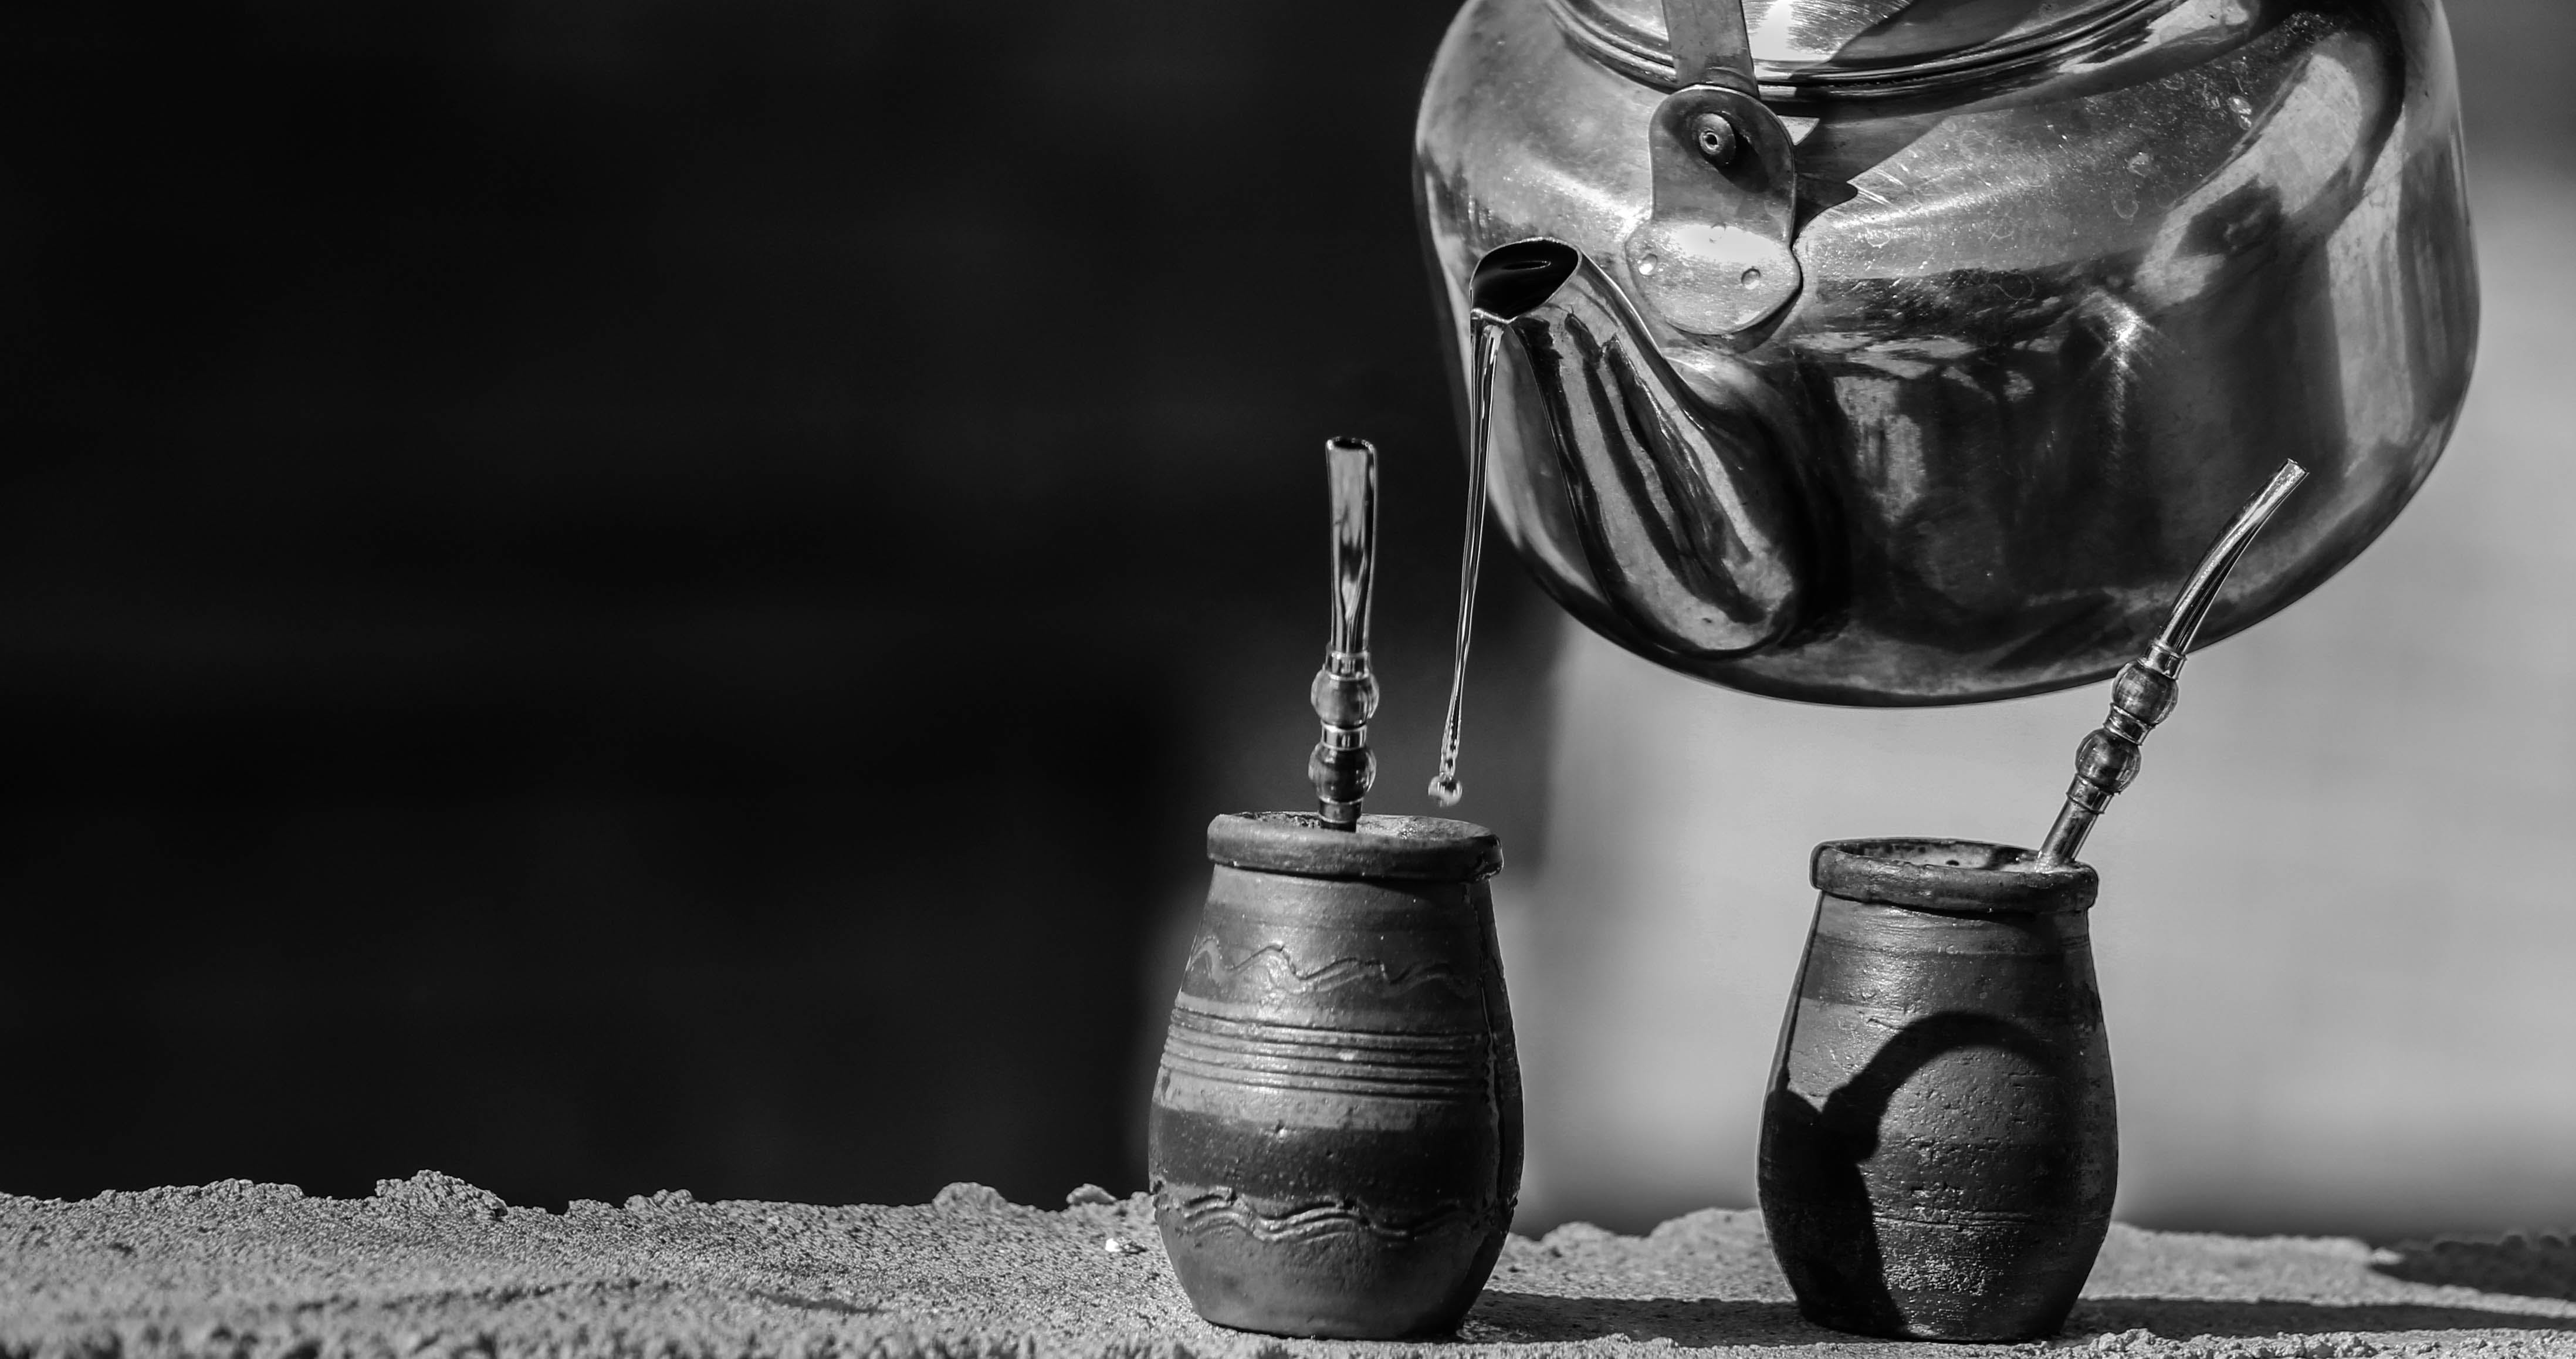 Grayscale Photography of Two Pots